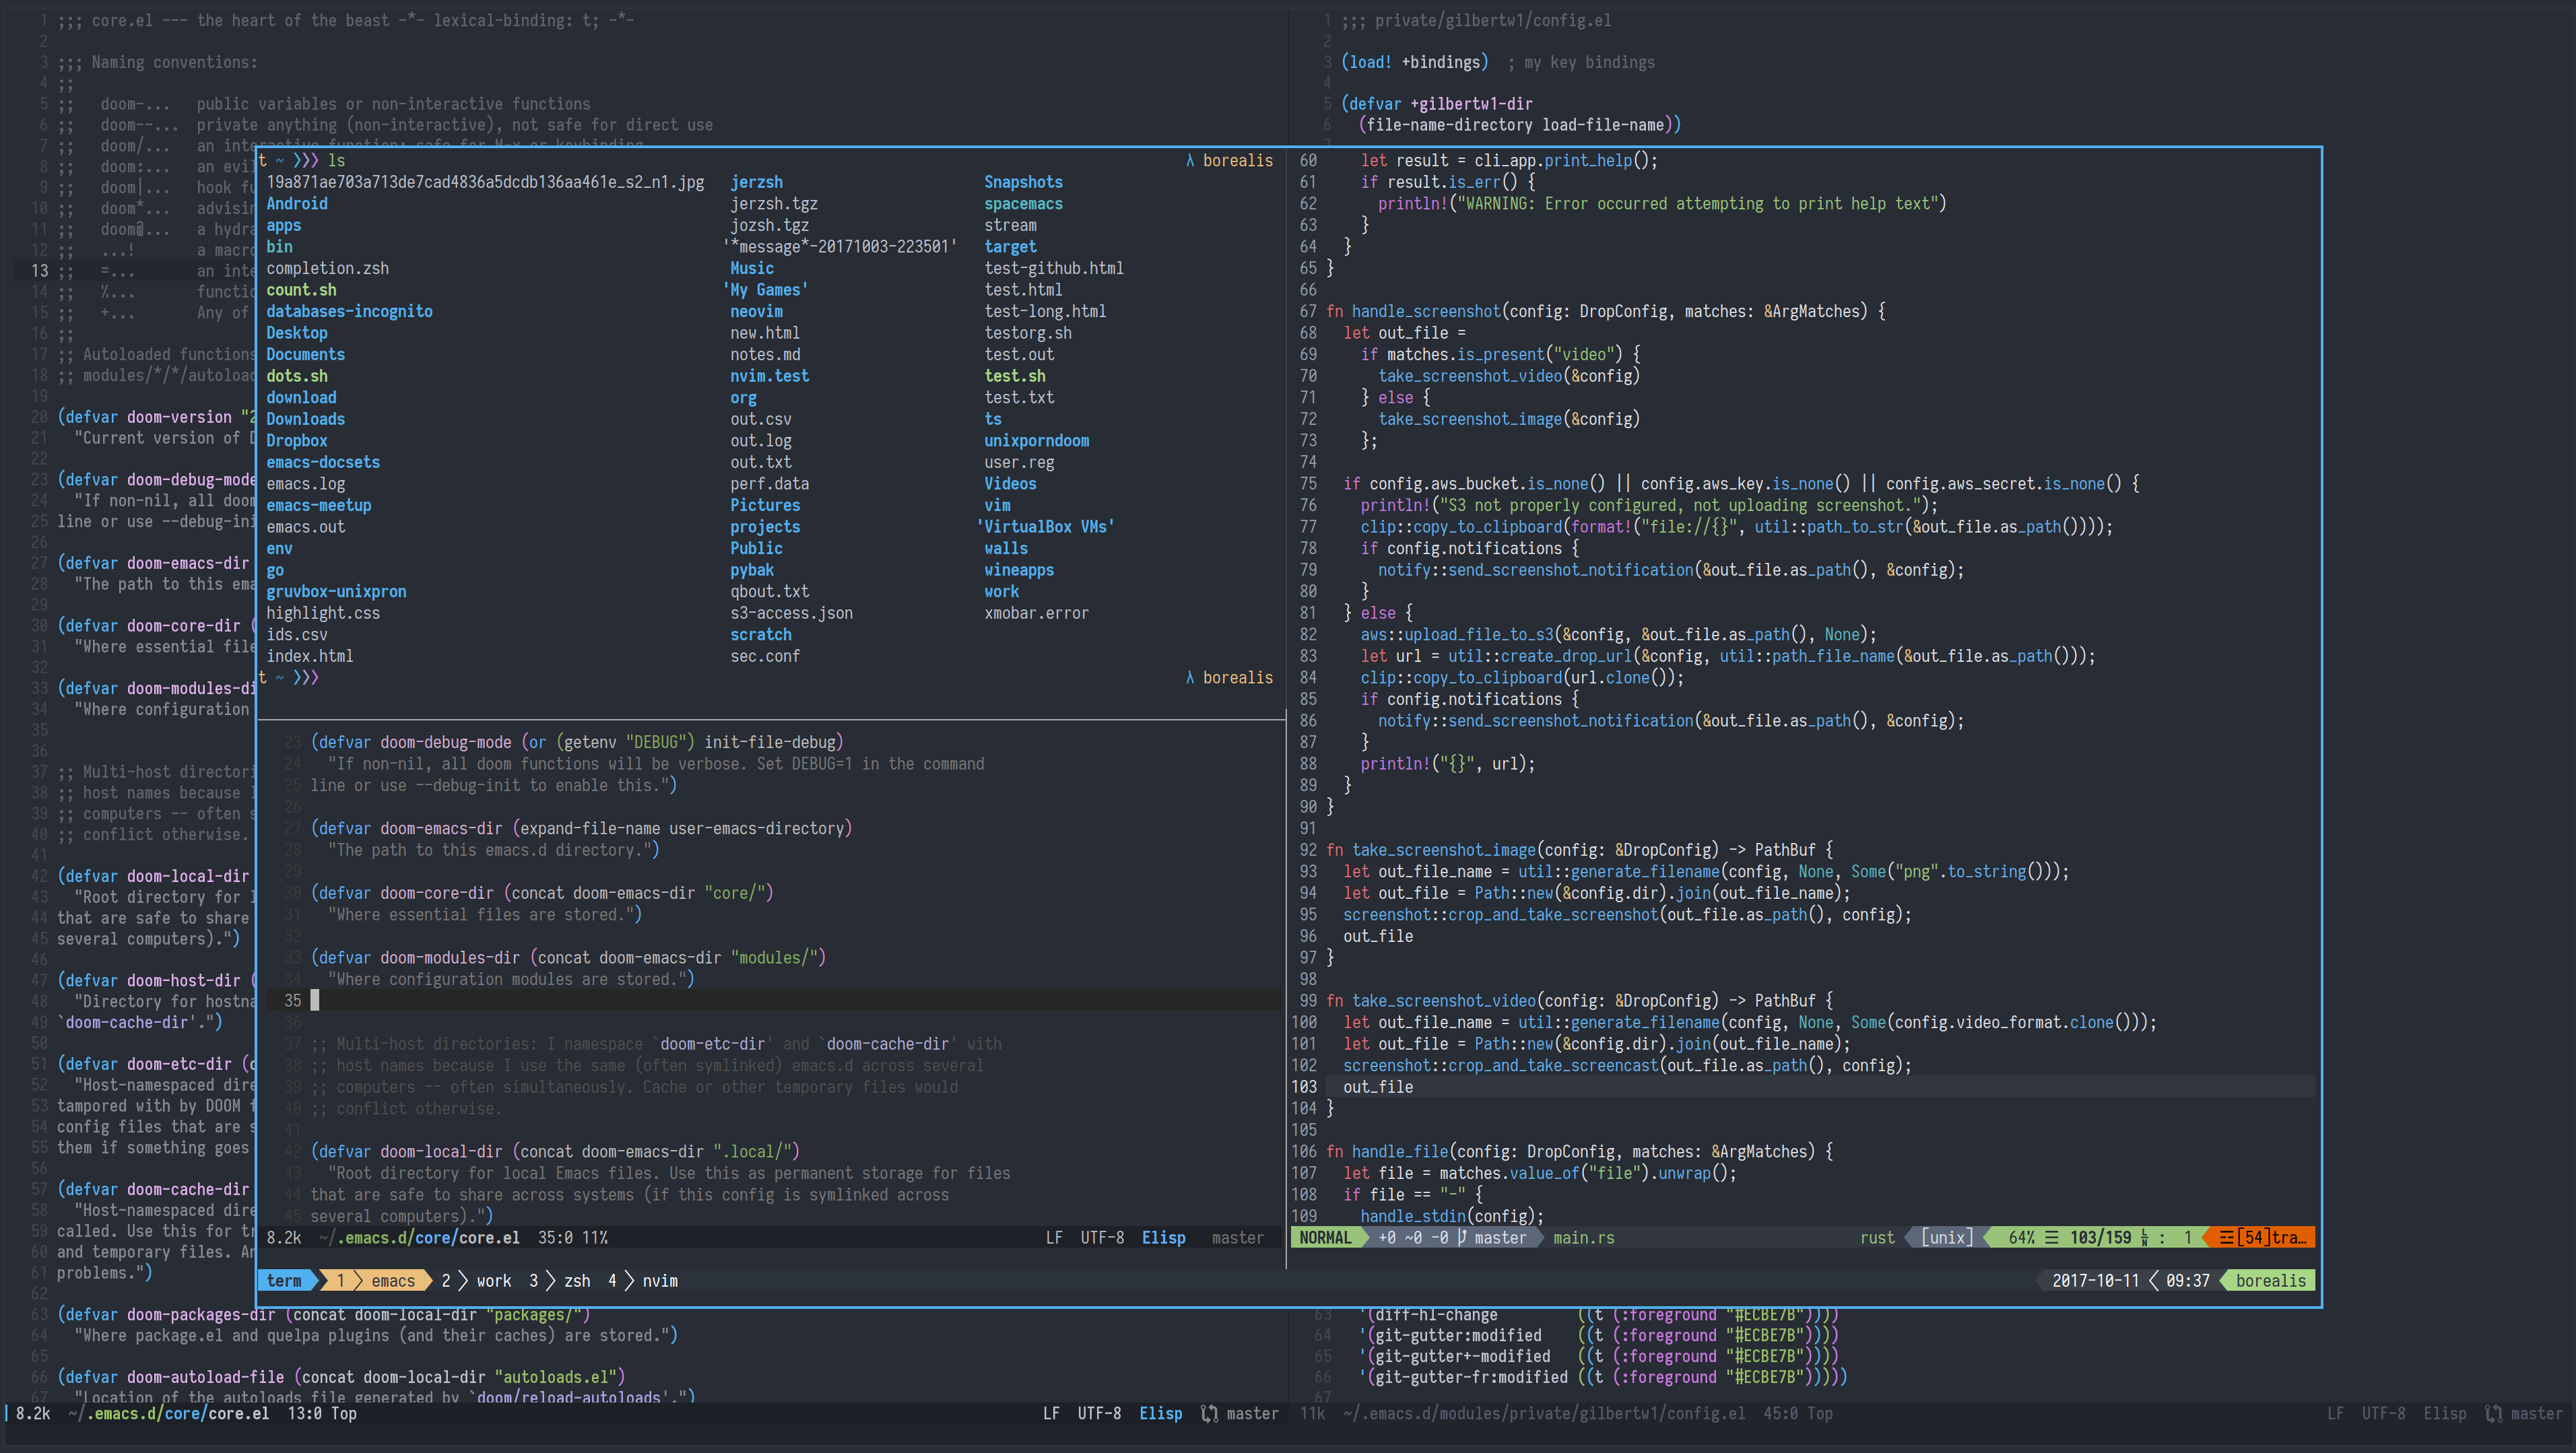 Can anyone recommend a consistent theme for iTerm2/Emacs/Vim